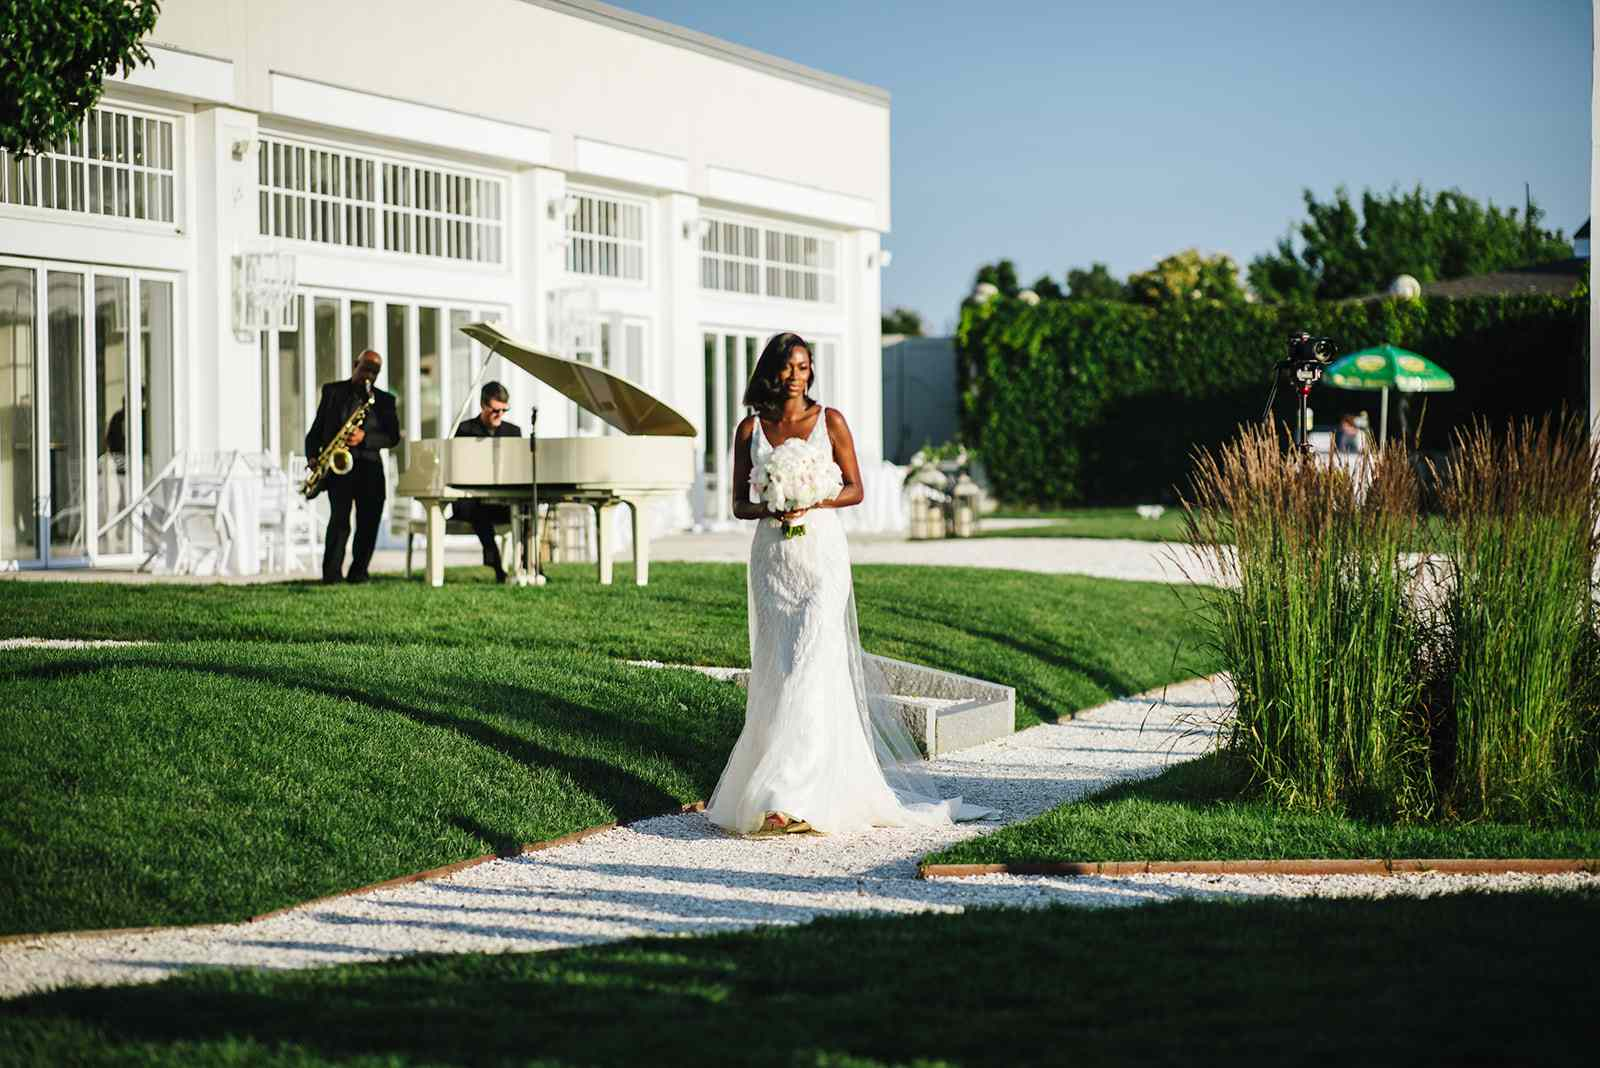 bride walking down the aisle at wedding ceremony